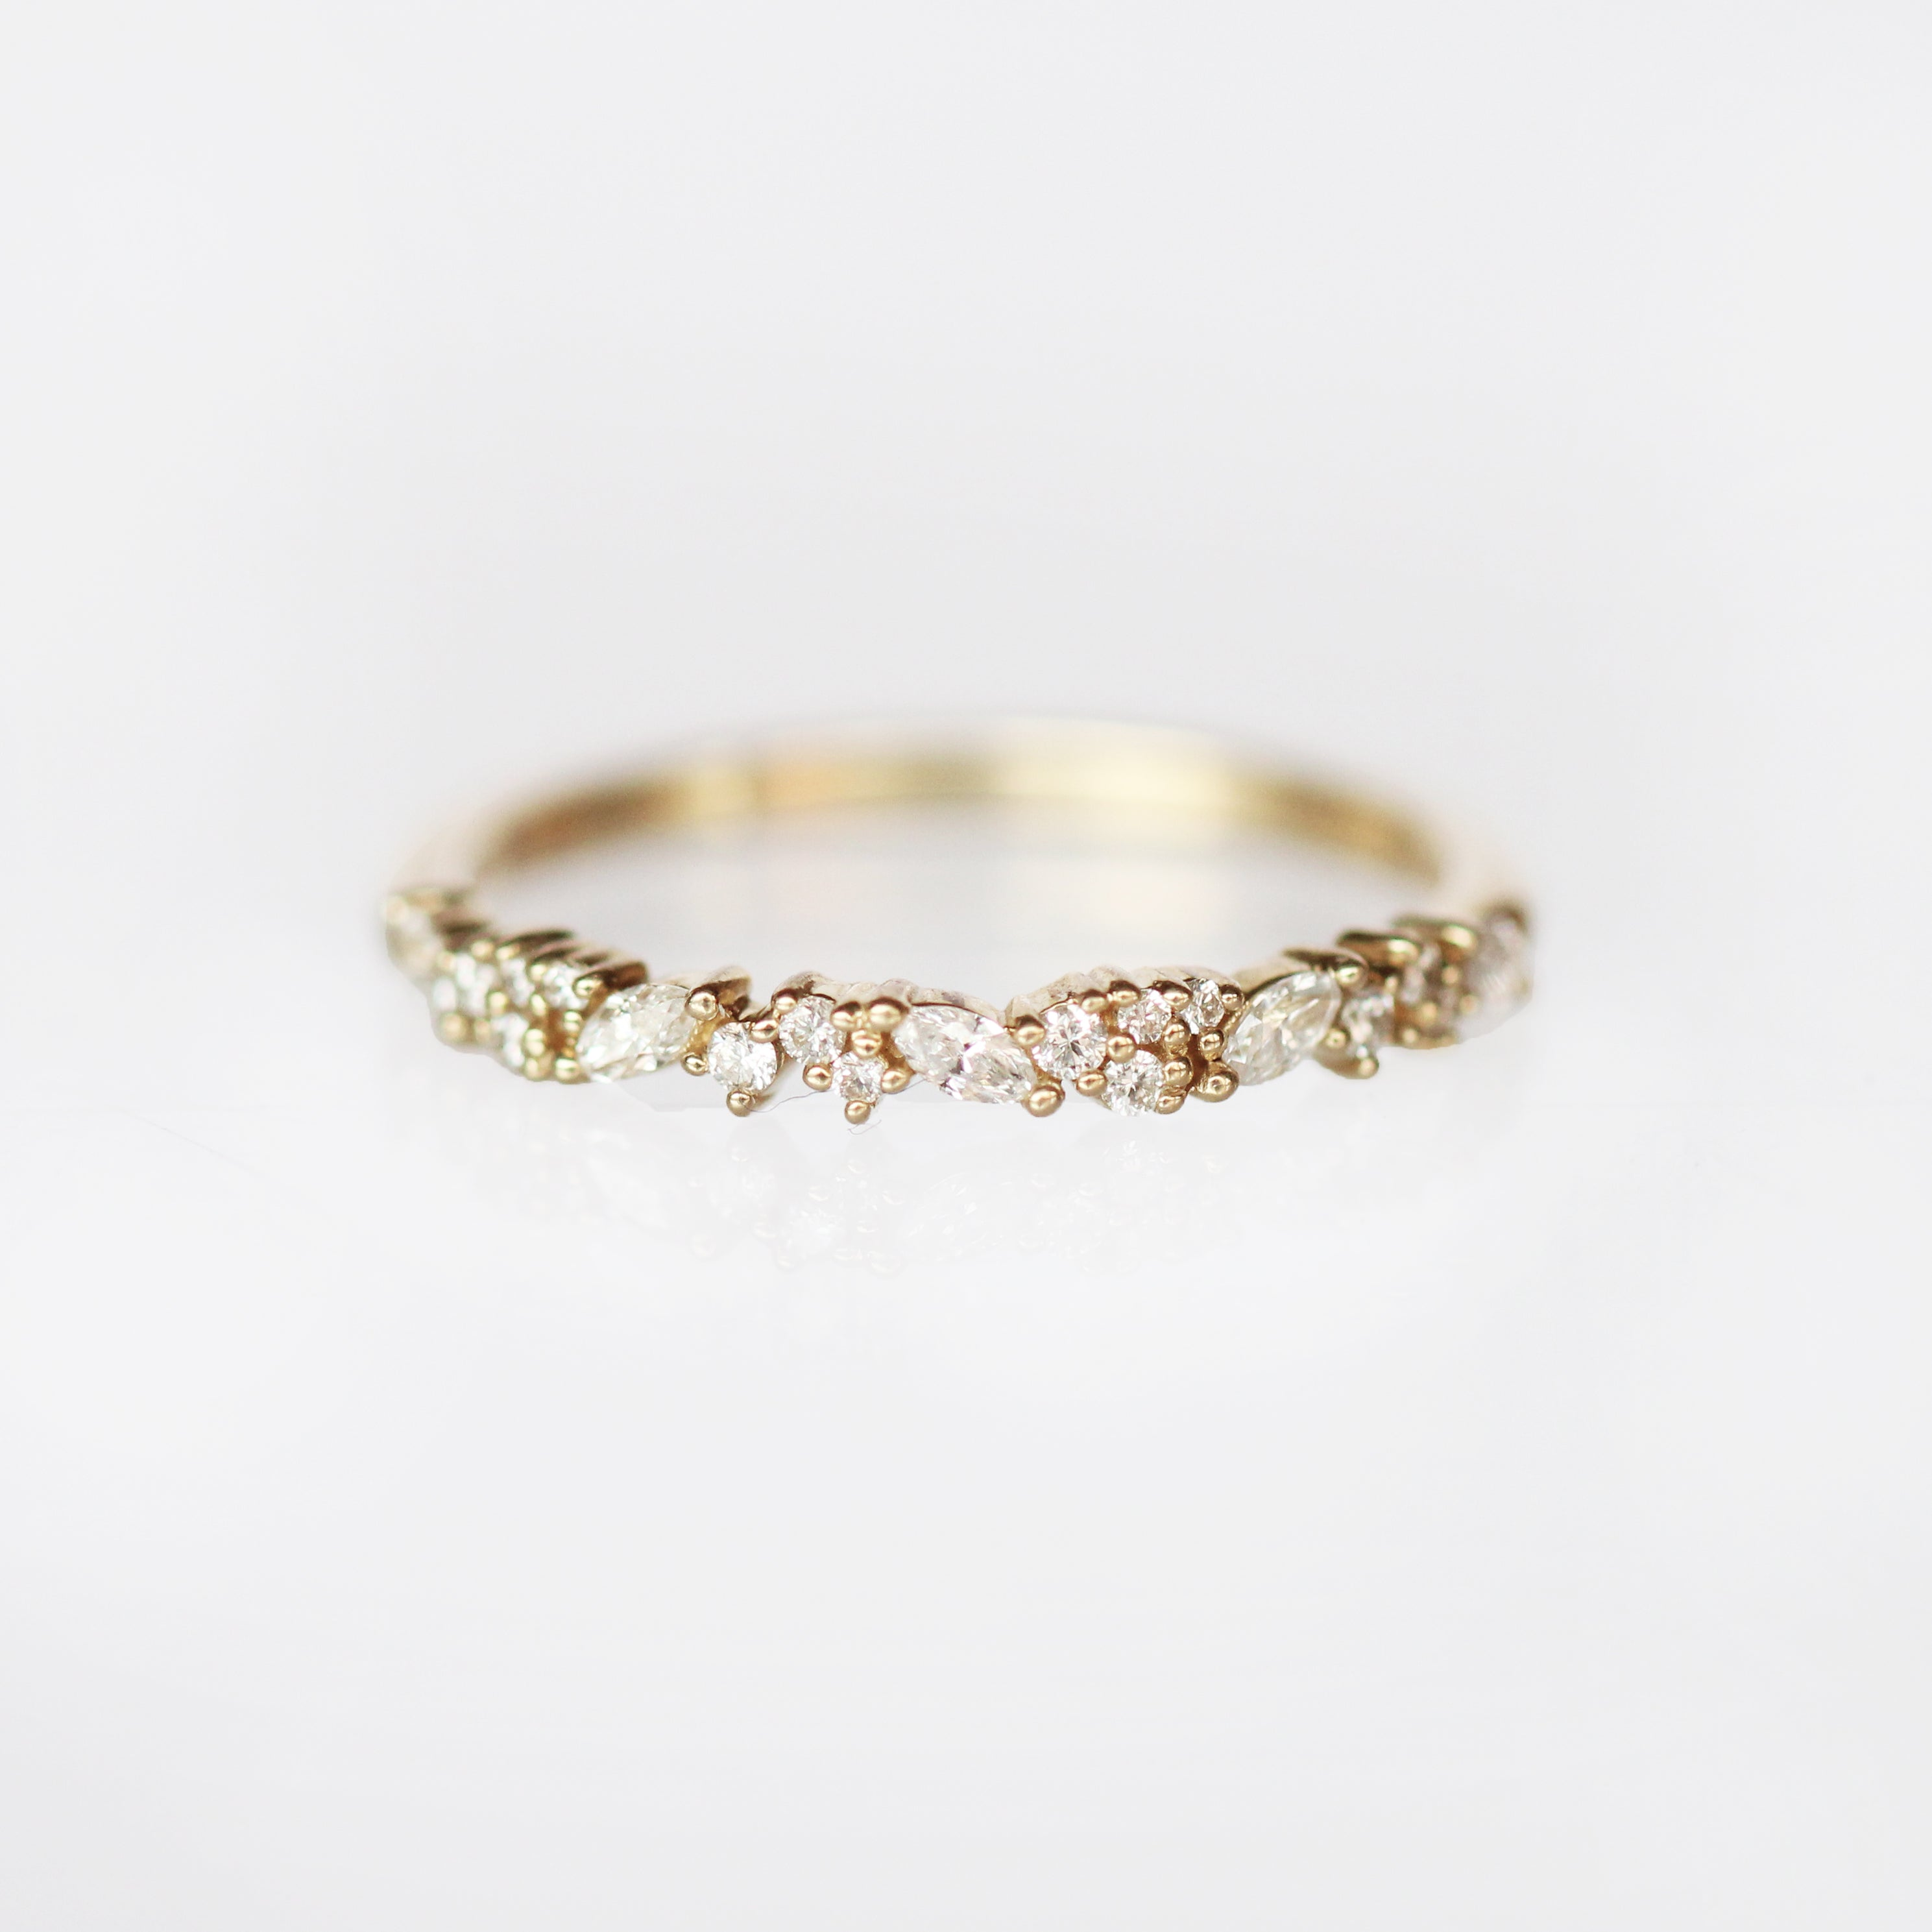 Gennie Diamond Engagement Ring Band - White diamonds - Celestial Diamonds ® by Midwinter Co.